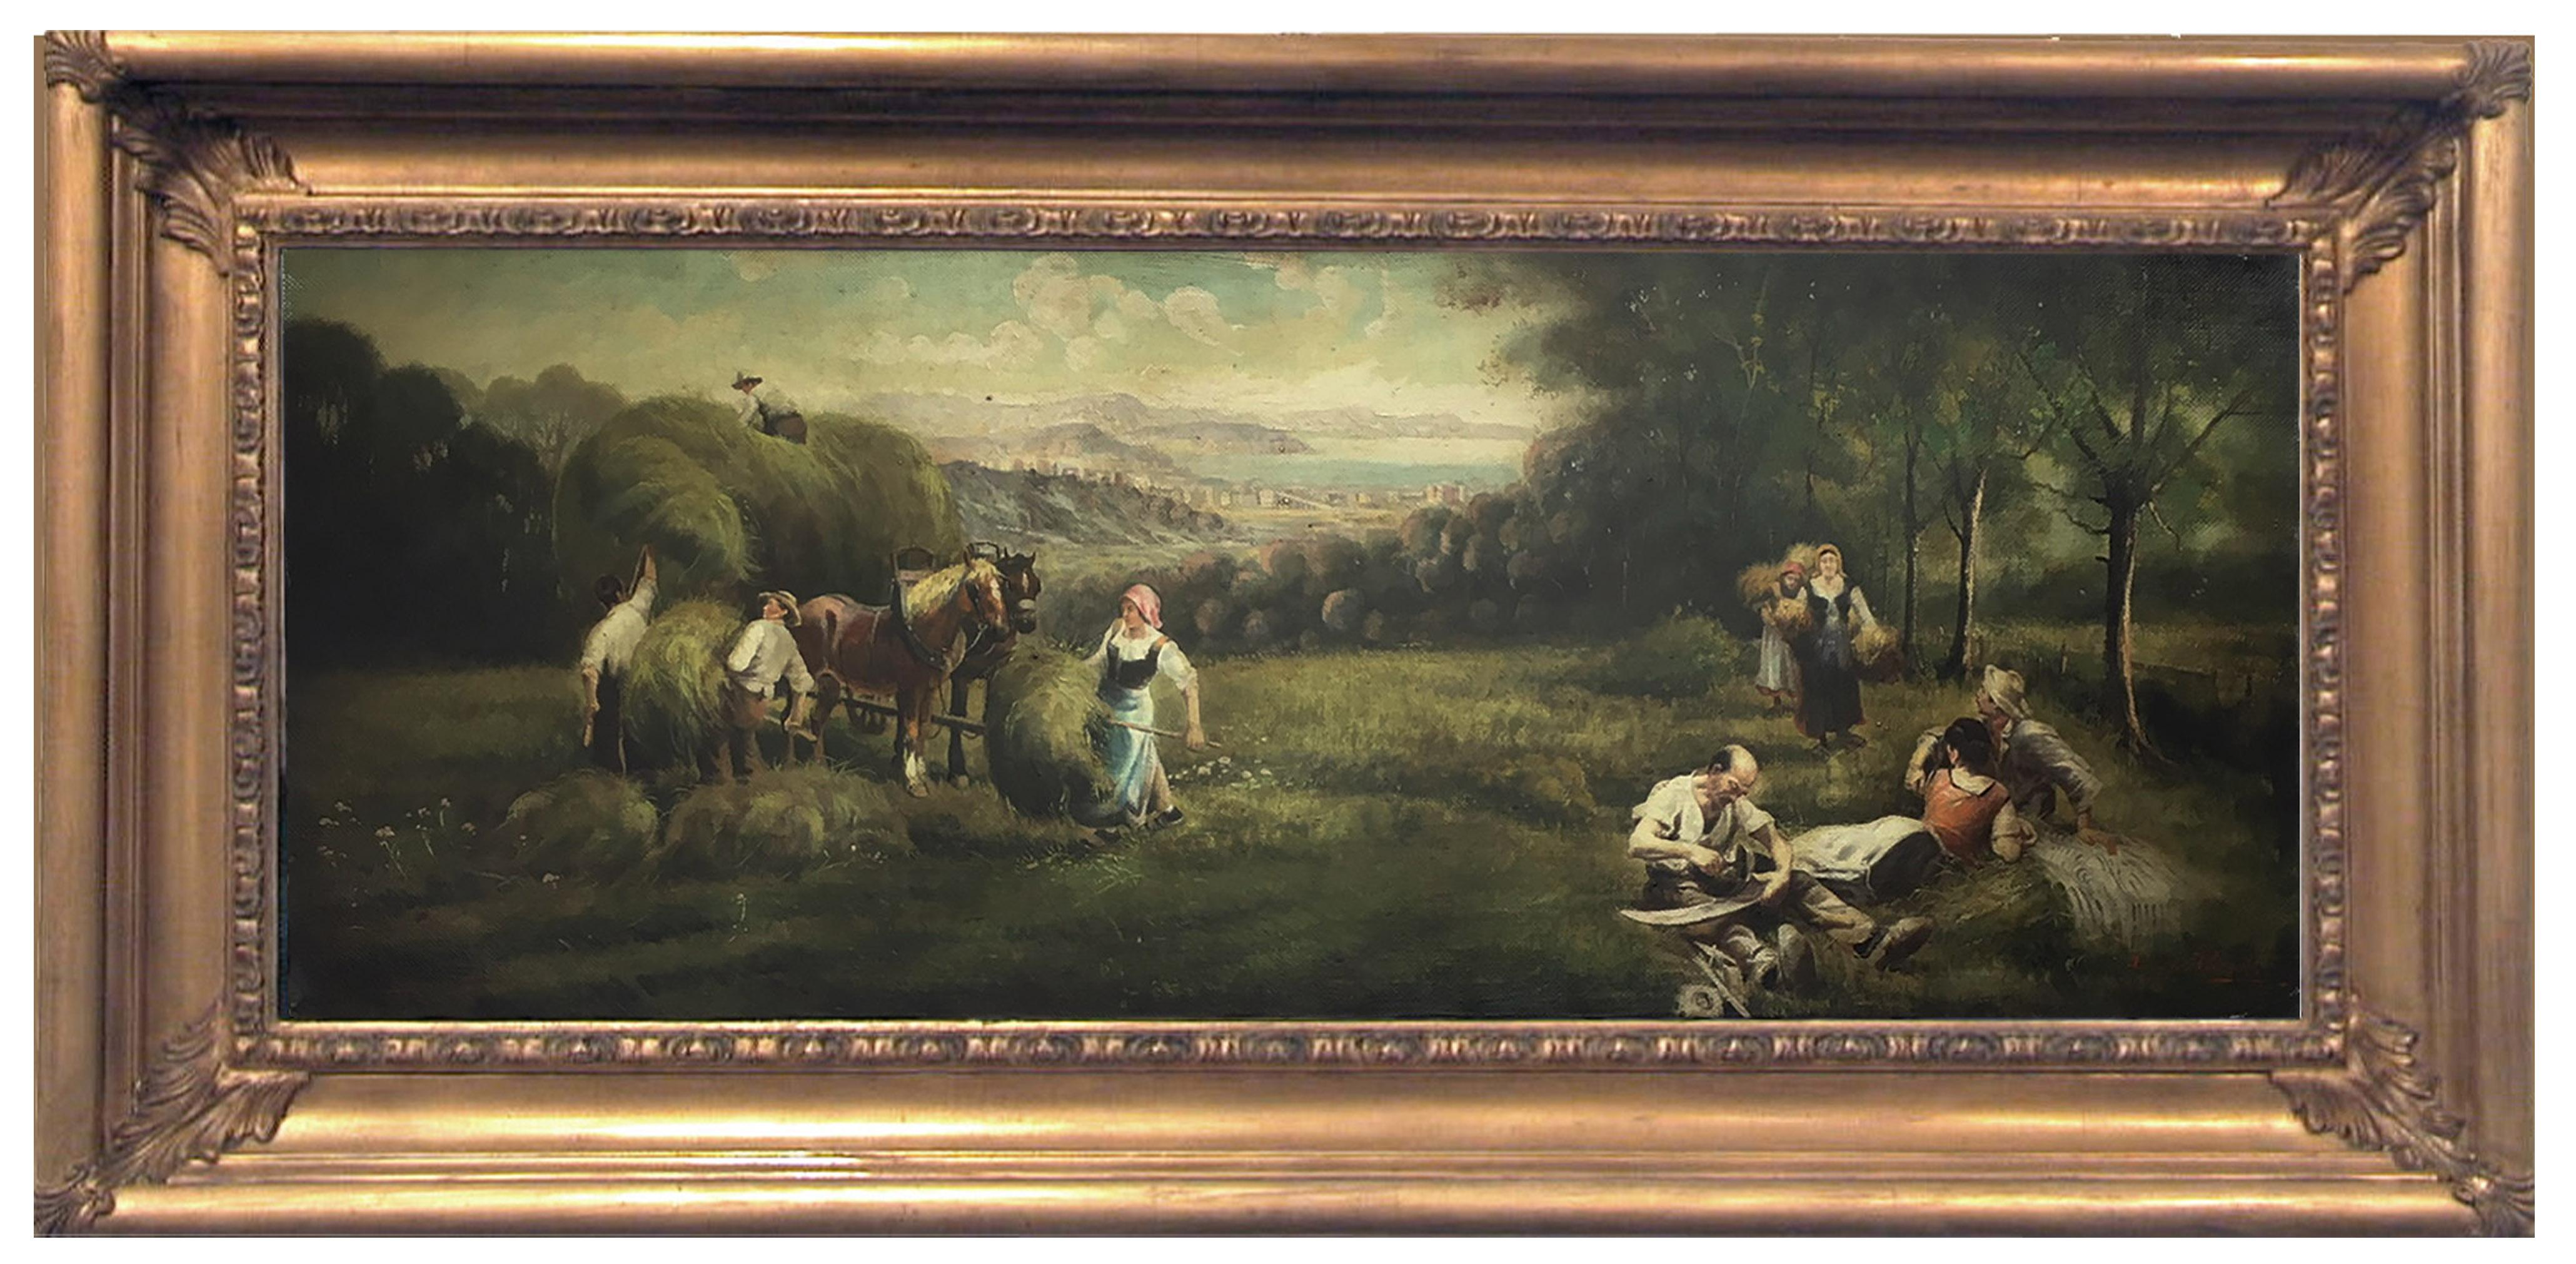 COUNTRY SCENE- French School - Italian Oil on Canvas Painting